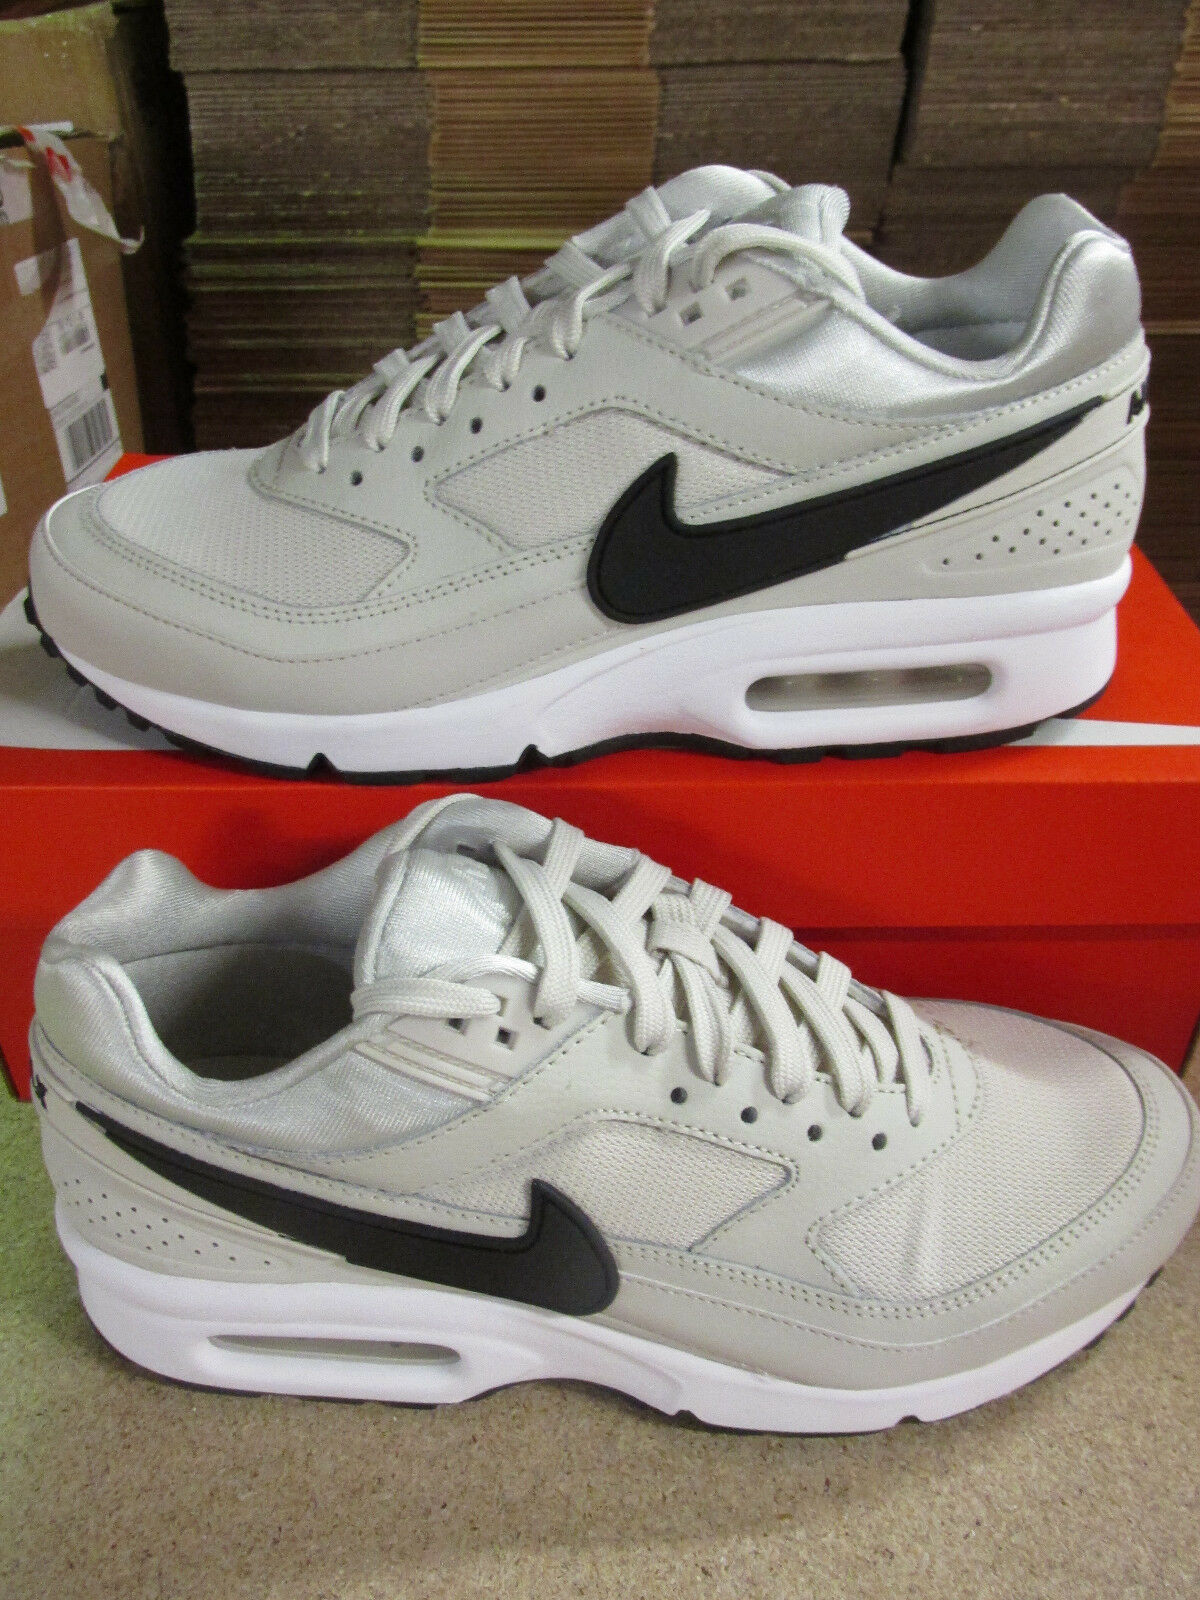 Nike Air Max BW SE Womens Running Tr819 001 Sneakers Shoes